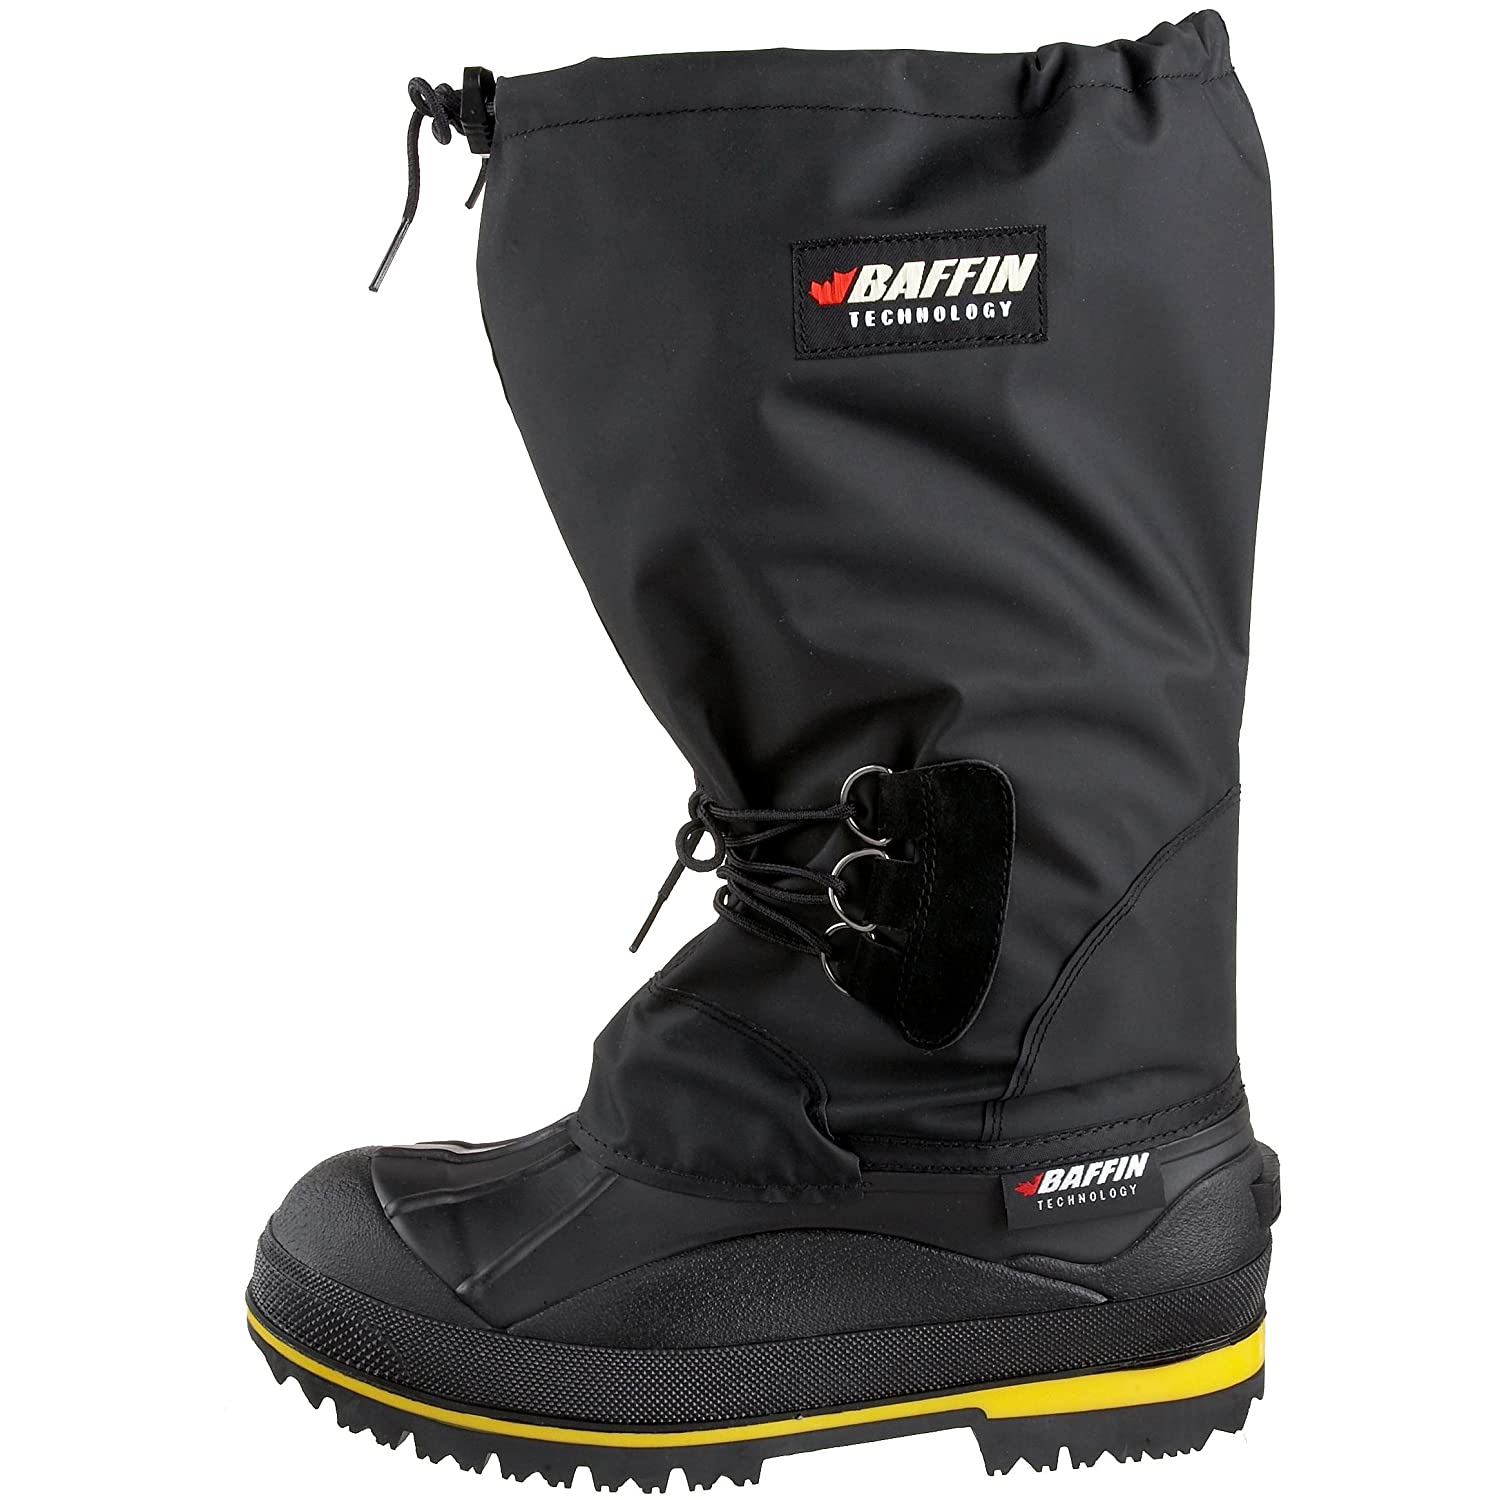 b01211c1a0b Baffin Men's Driller Canadian Made Industrial Boot